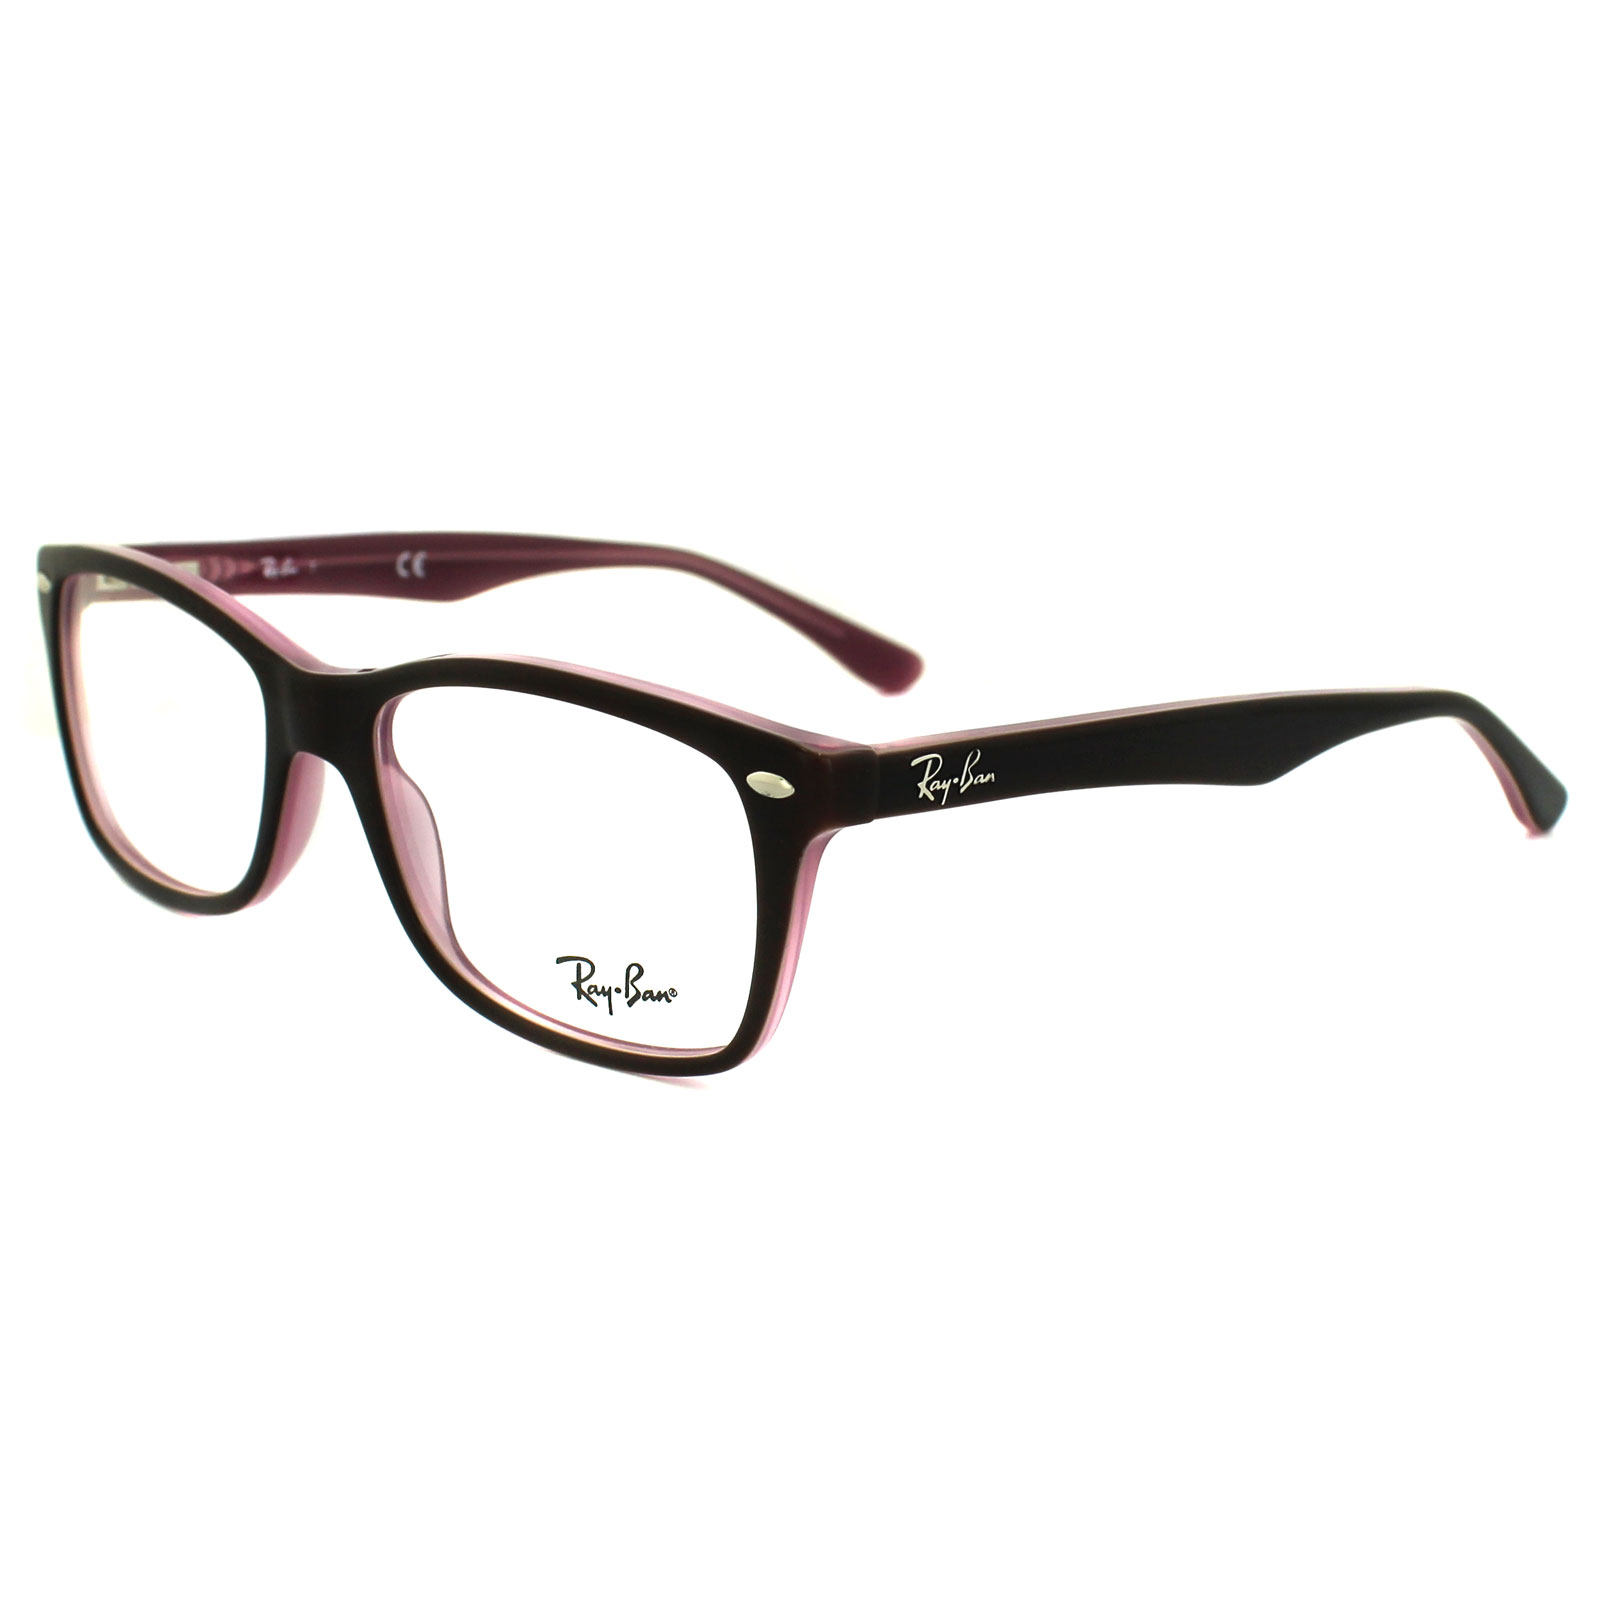 Ray-Ban Glasses Frames 5228 2126 Top Brown on Opal Pink ...